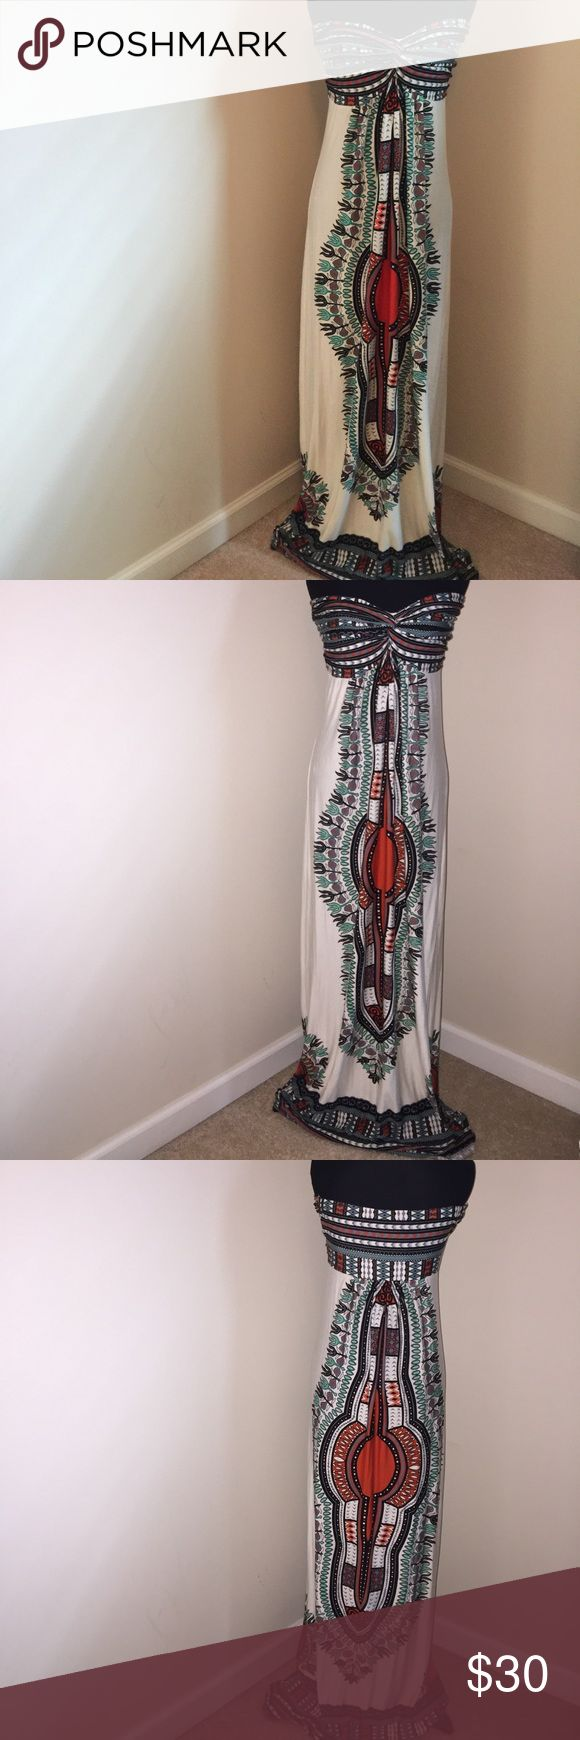 Aztec Maxi Dress Never worn tags still attached Aztec maxi dress. Smoke free home in perfect condition. This dress is sleeveless and floor length Angie Dresses Maxi